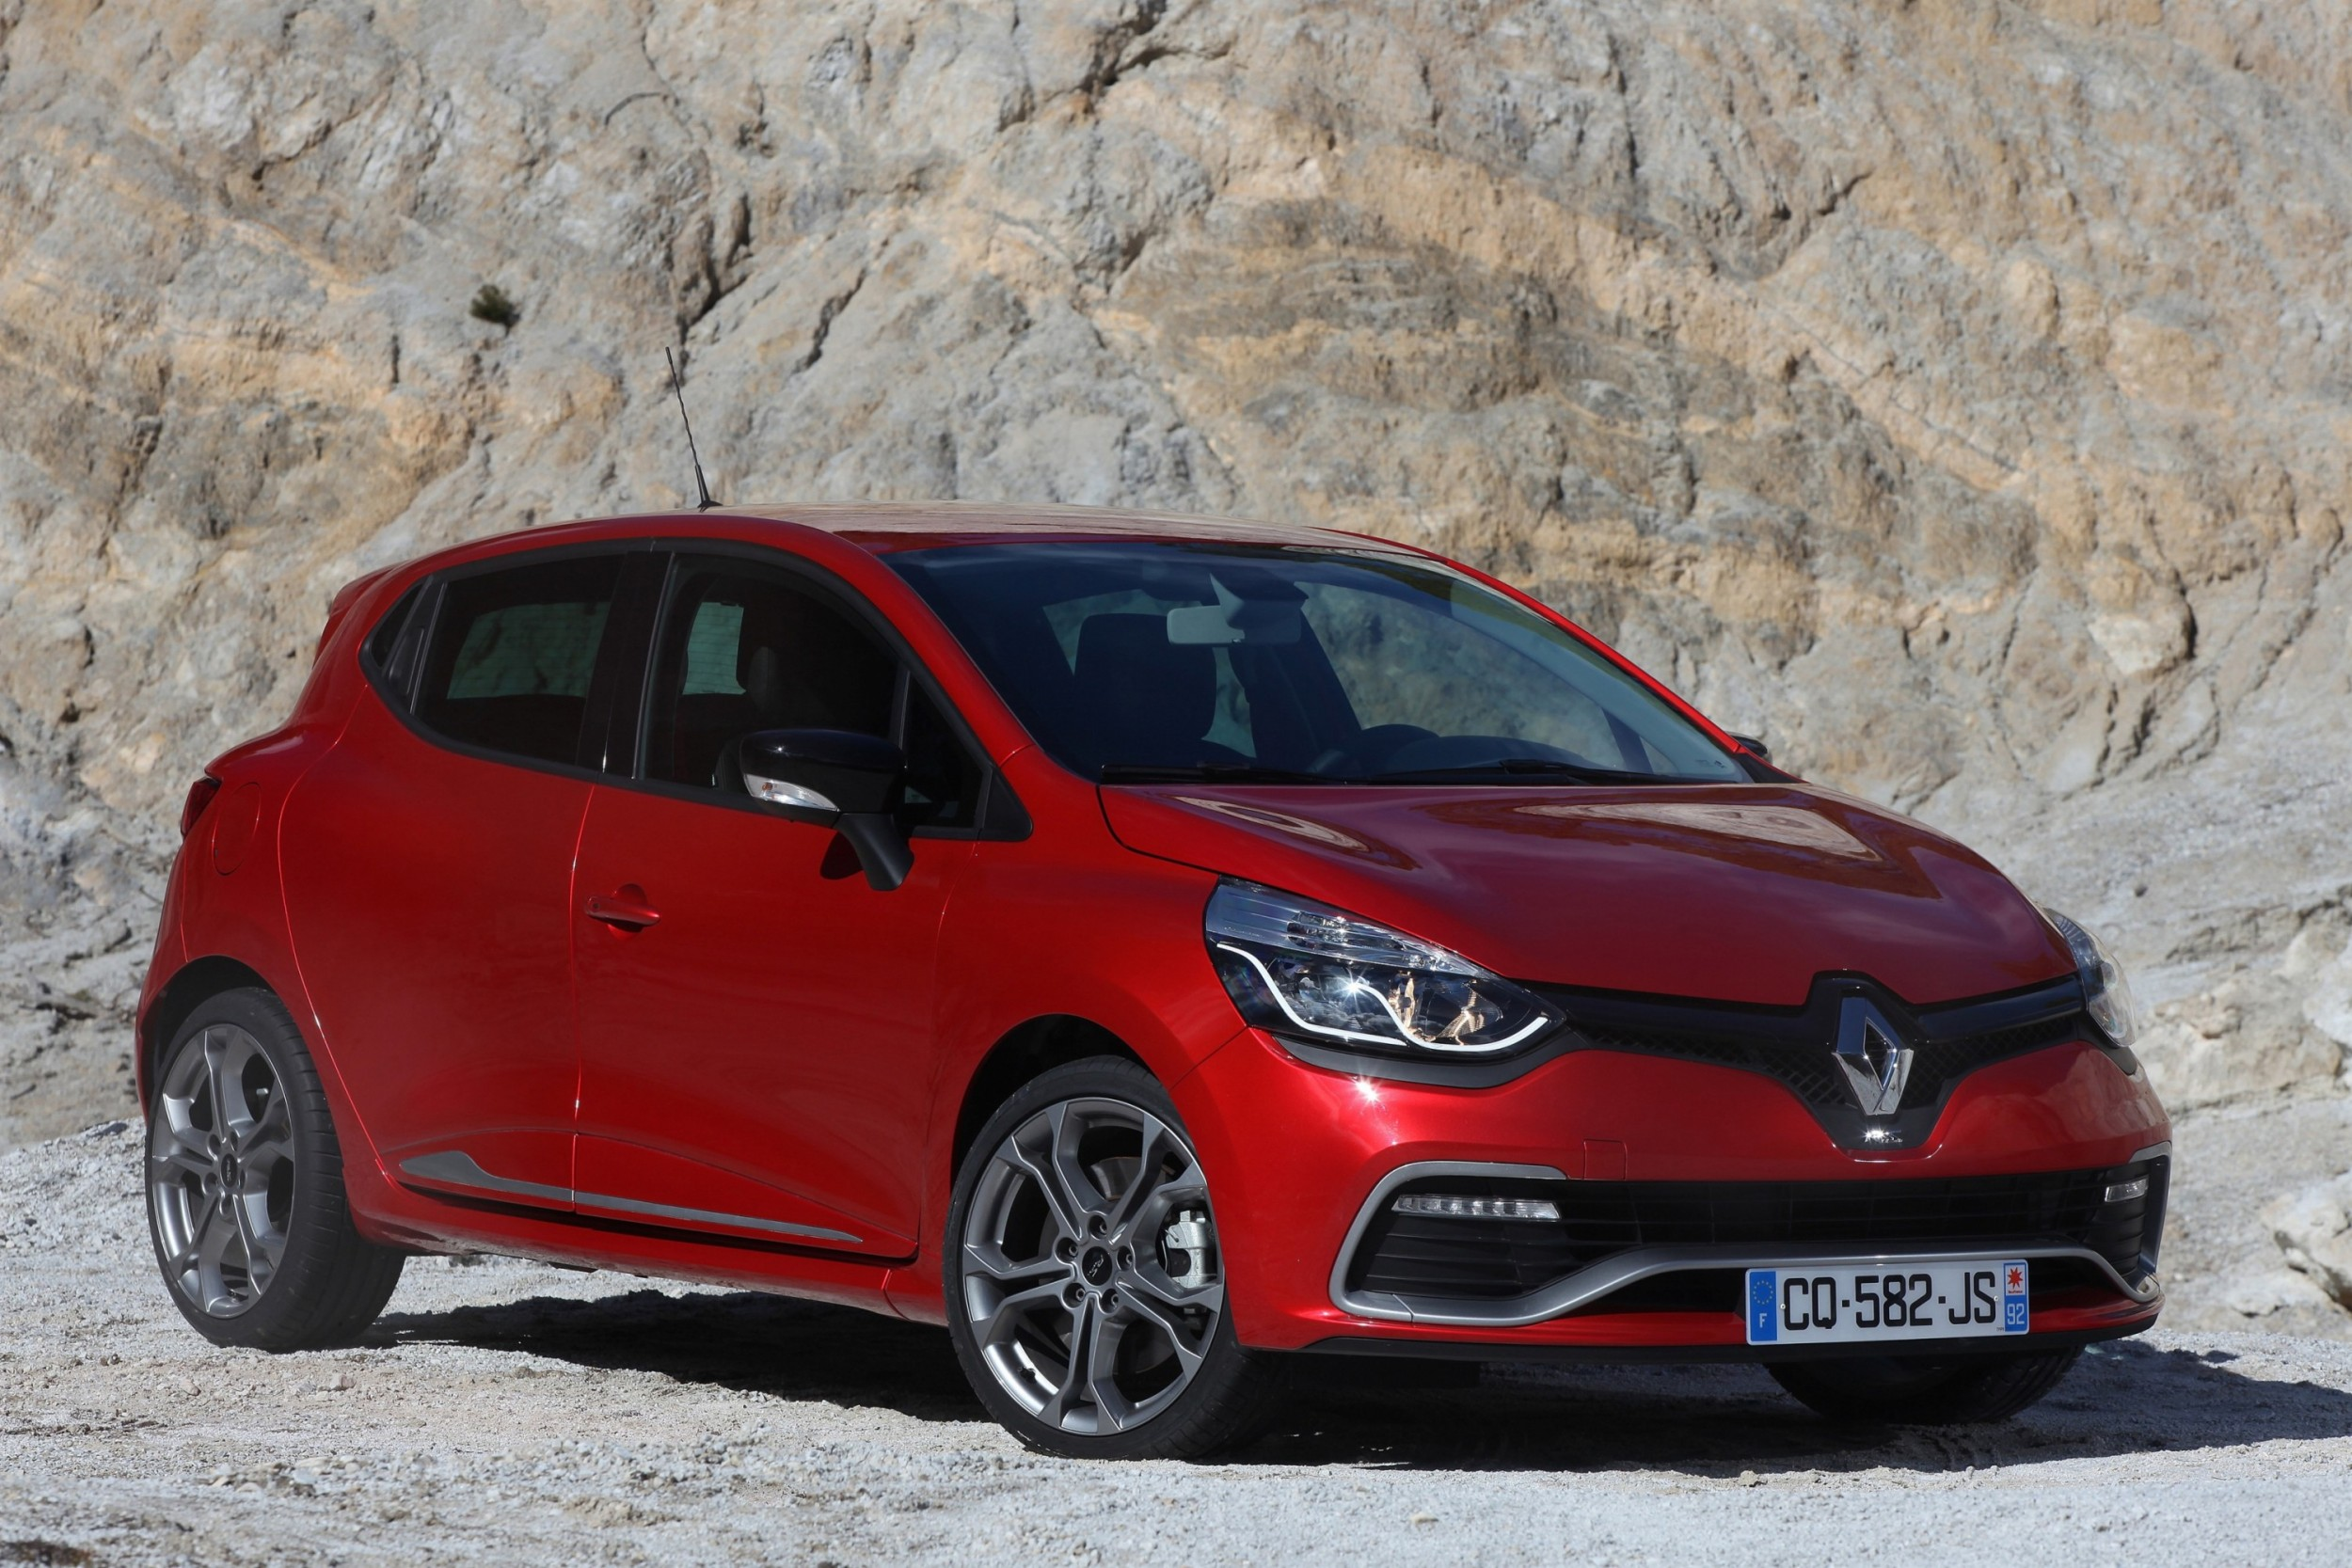 buyers guide info building my 2014 renaultsport clio 200. Black Bedroom Furniture Sets. Home Design Ideas